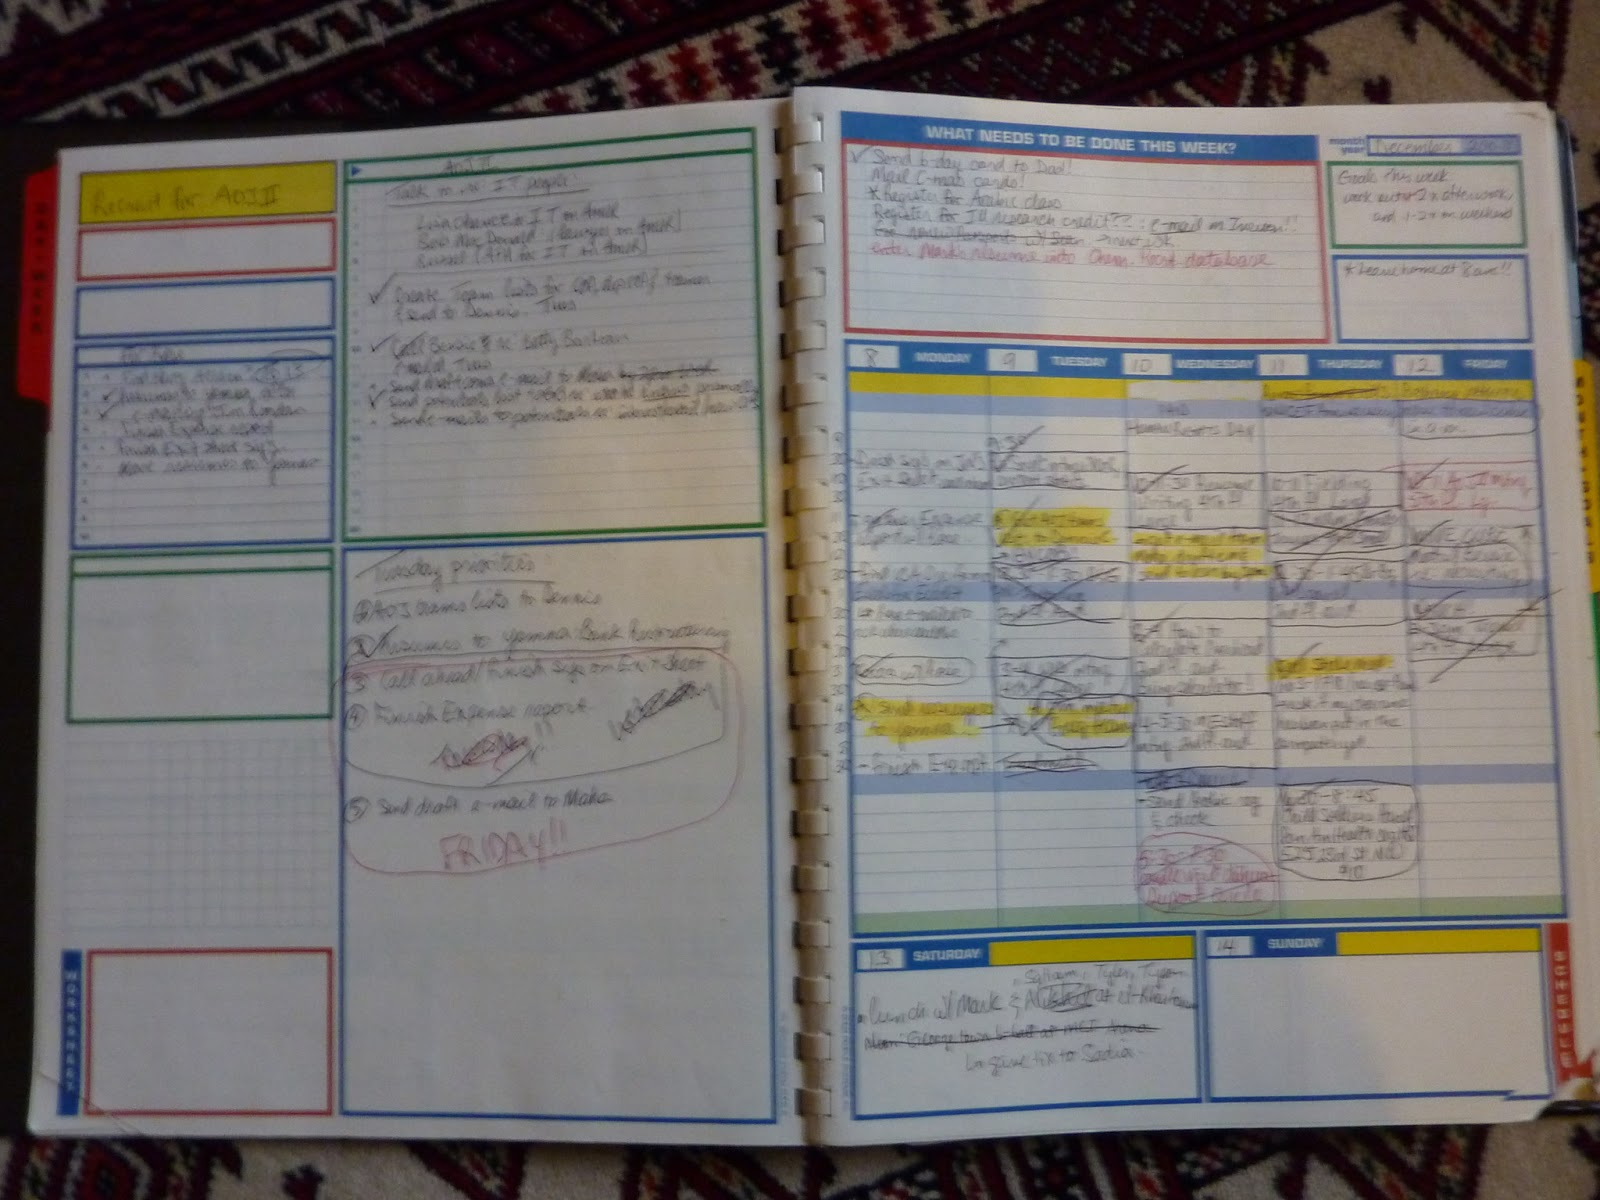 Plannerisms: Planners at work